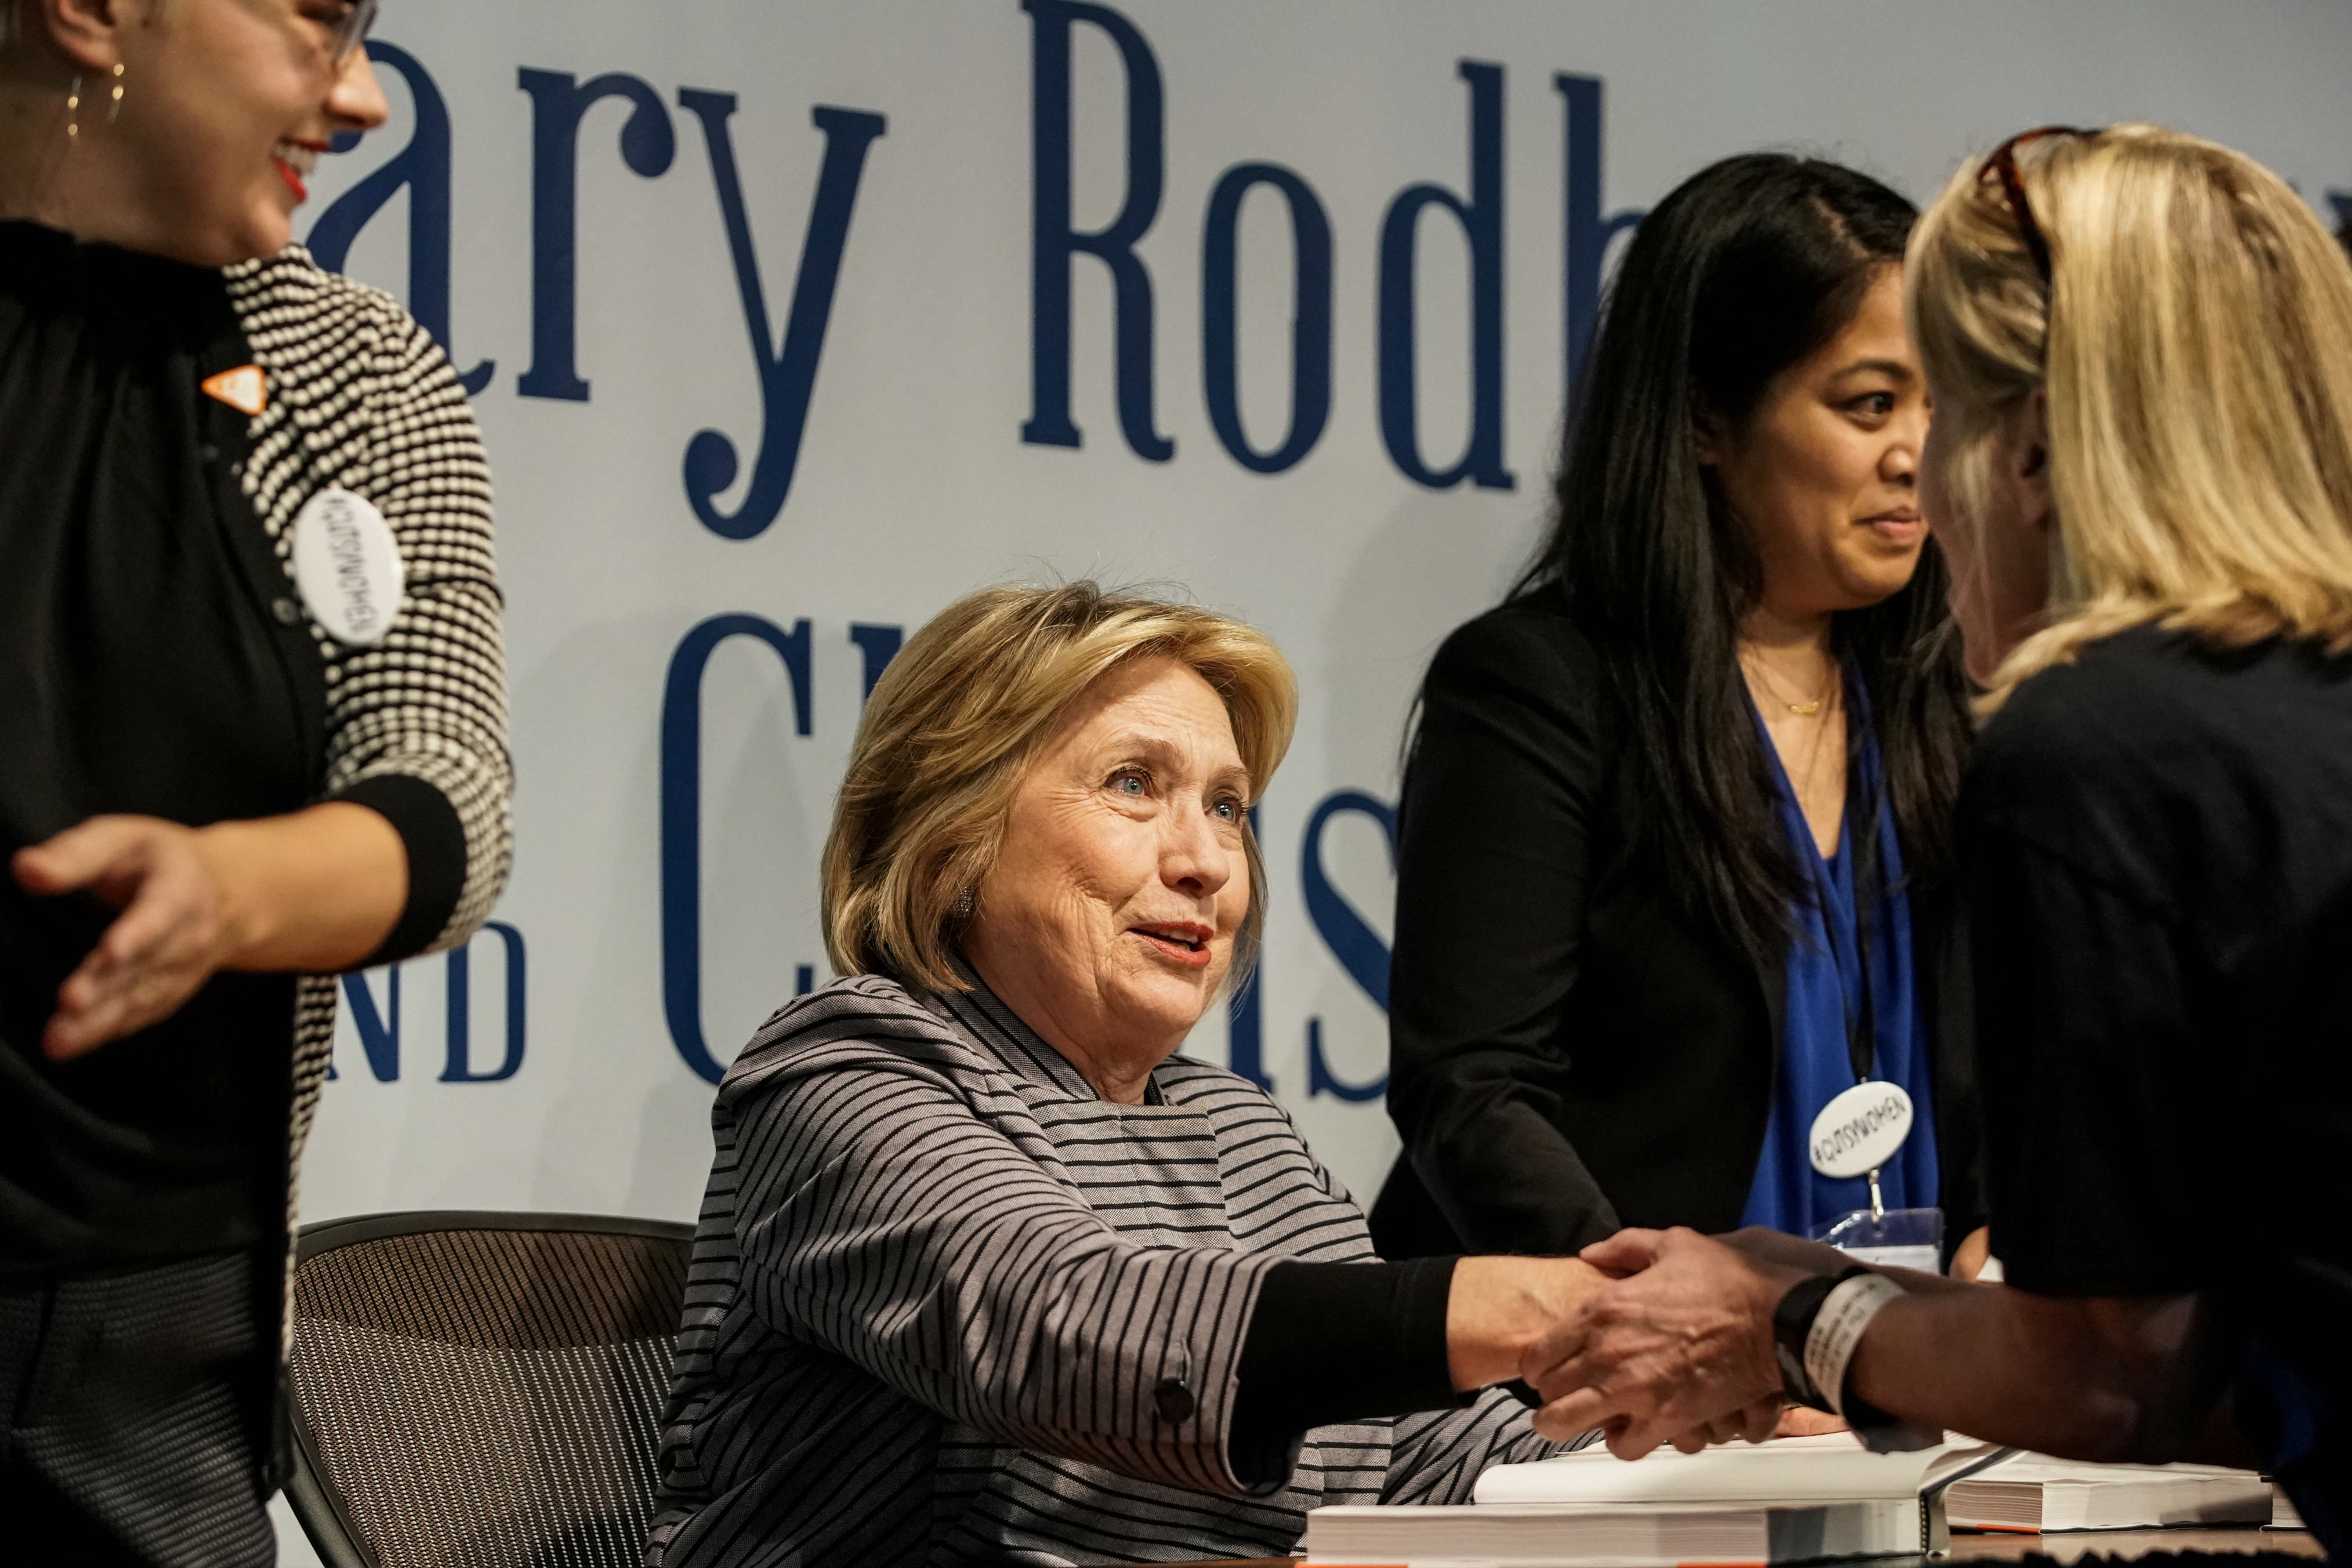 """FILE PHOTO: Hillary Clinton talks to a supporter during a signing event for """"The Book of Gutsy Women"""", a book by her and her daughter Chelsea Clinton, in the Manhattan borough of New York City, New York, U.S., October 3, 2019. REUTERS/Jeenah Moon/File Photo"""